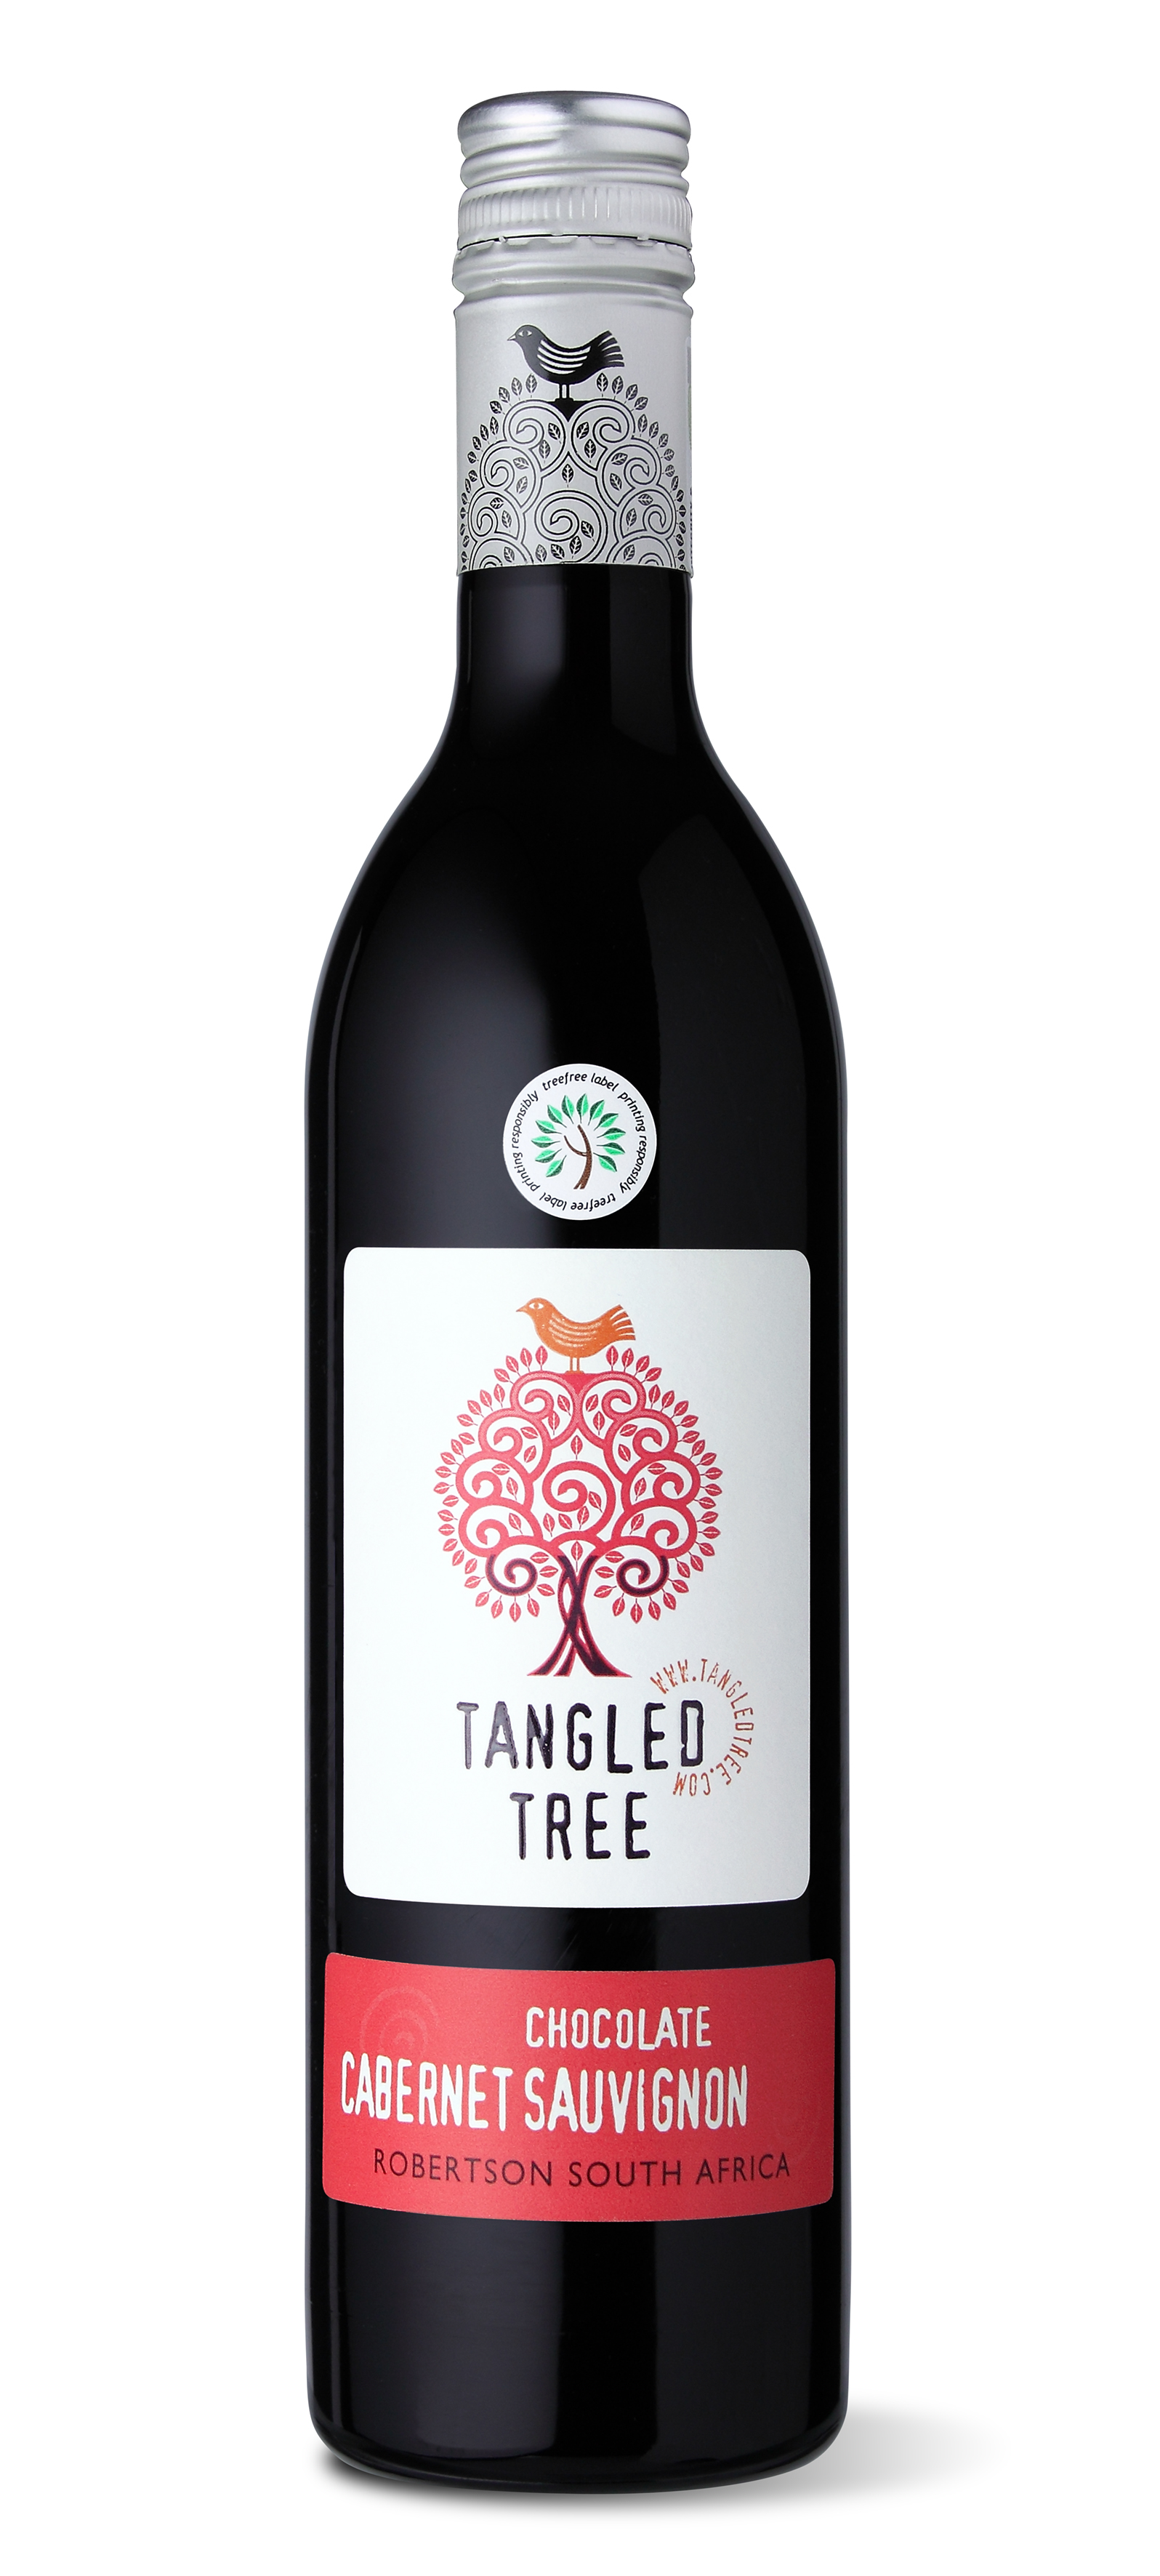 Tangled Tree Chocolate Cabernet Sauvignon 2011